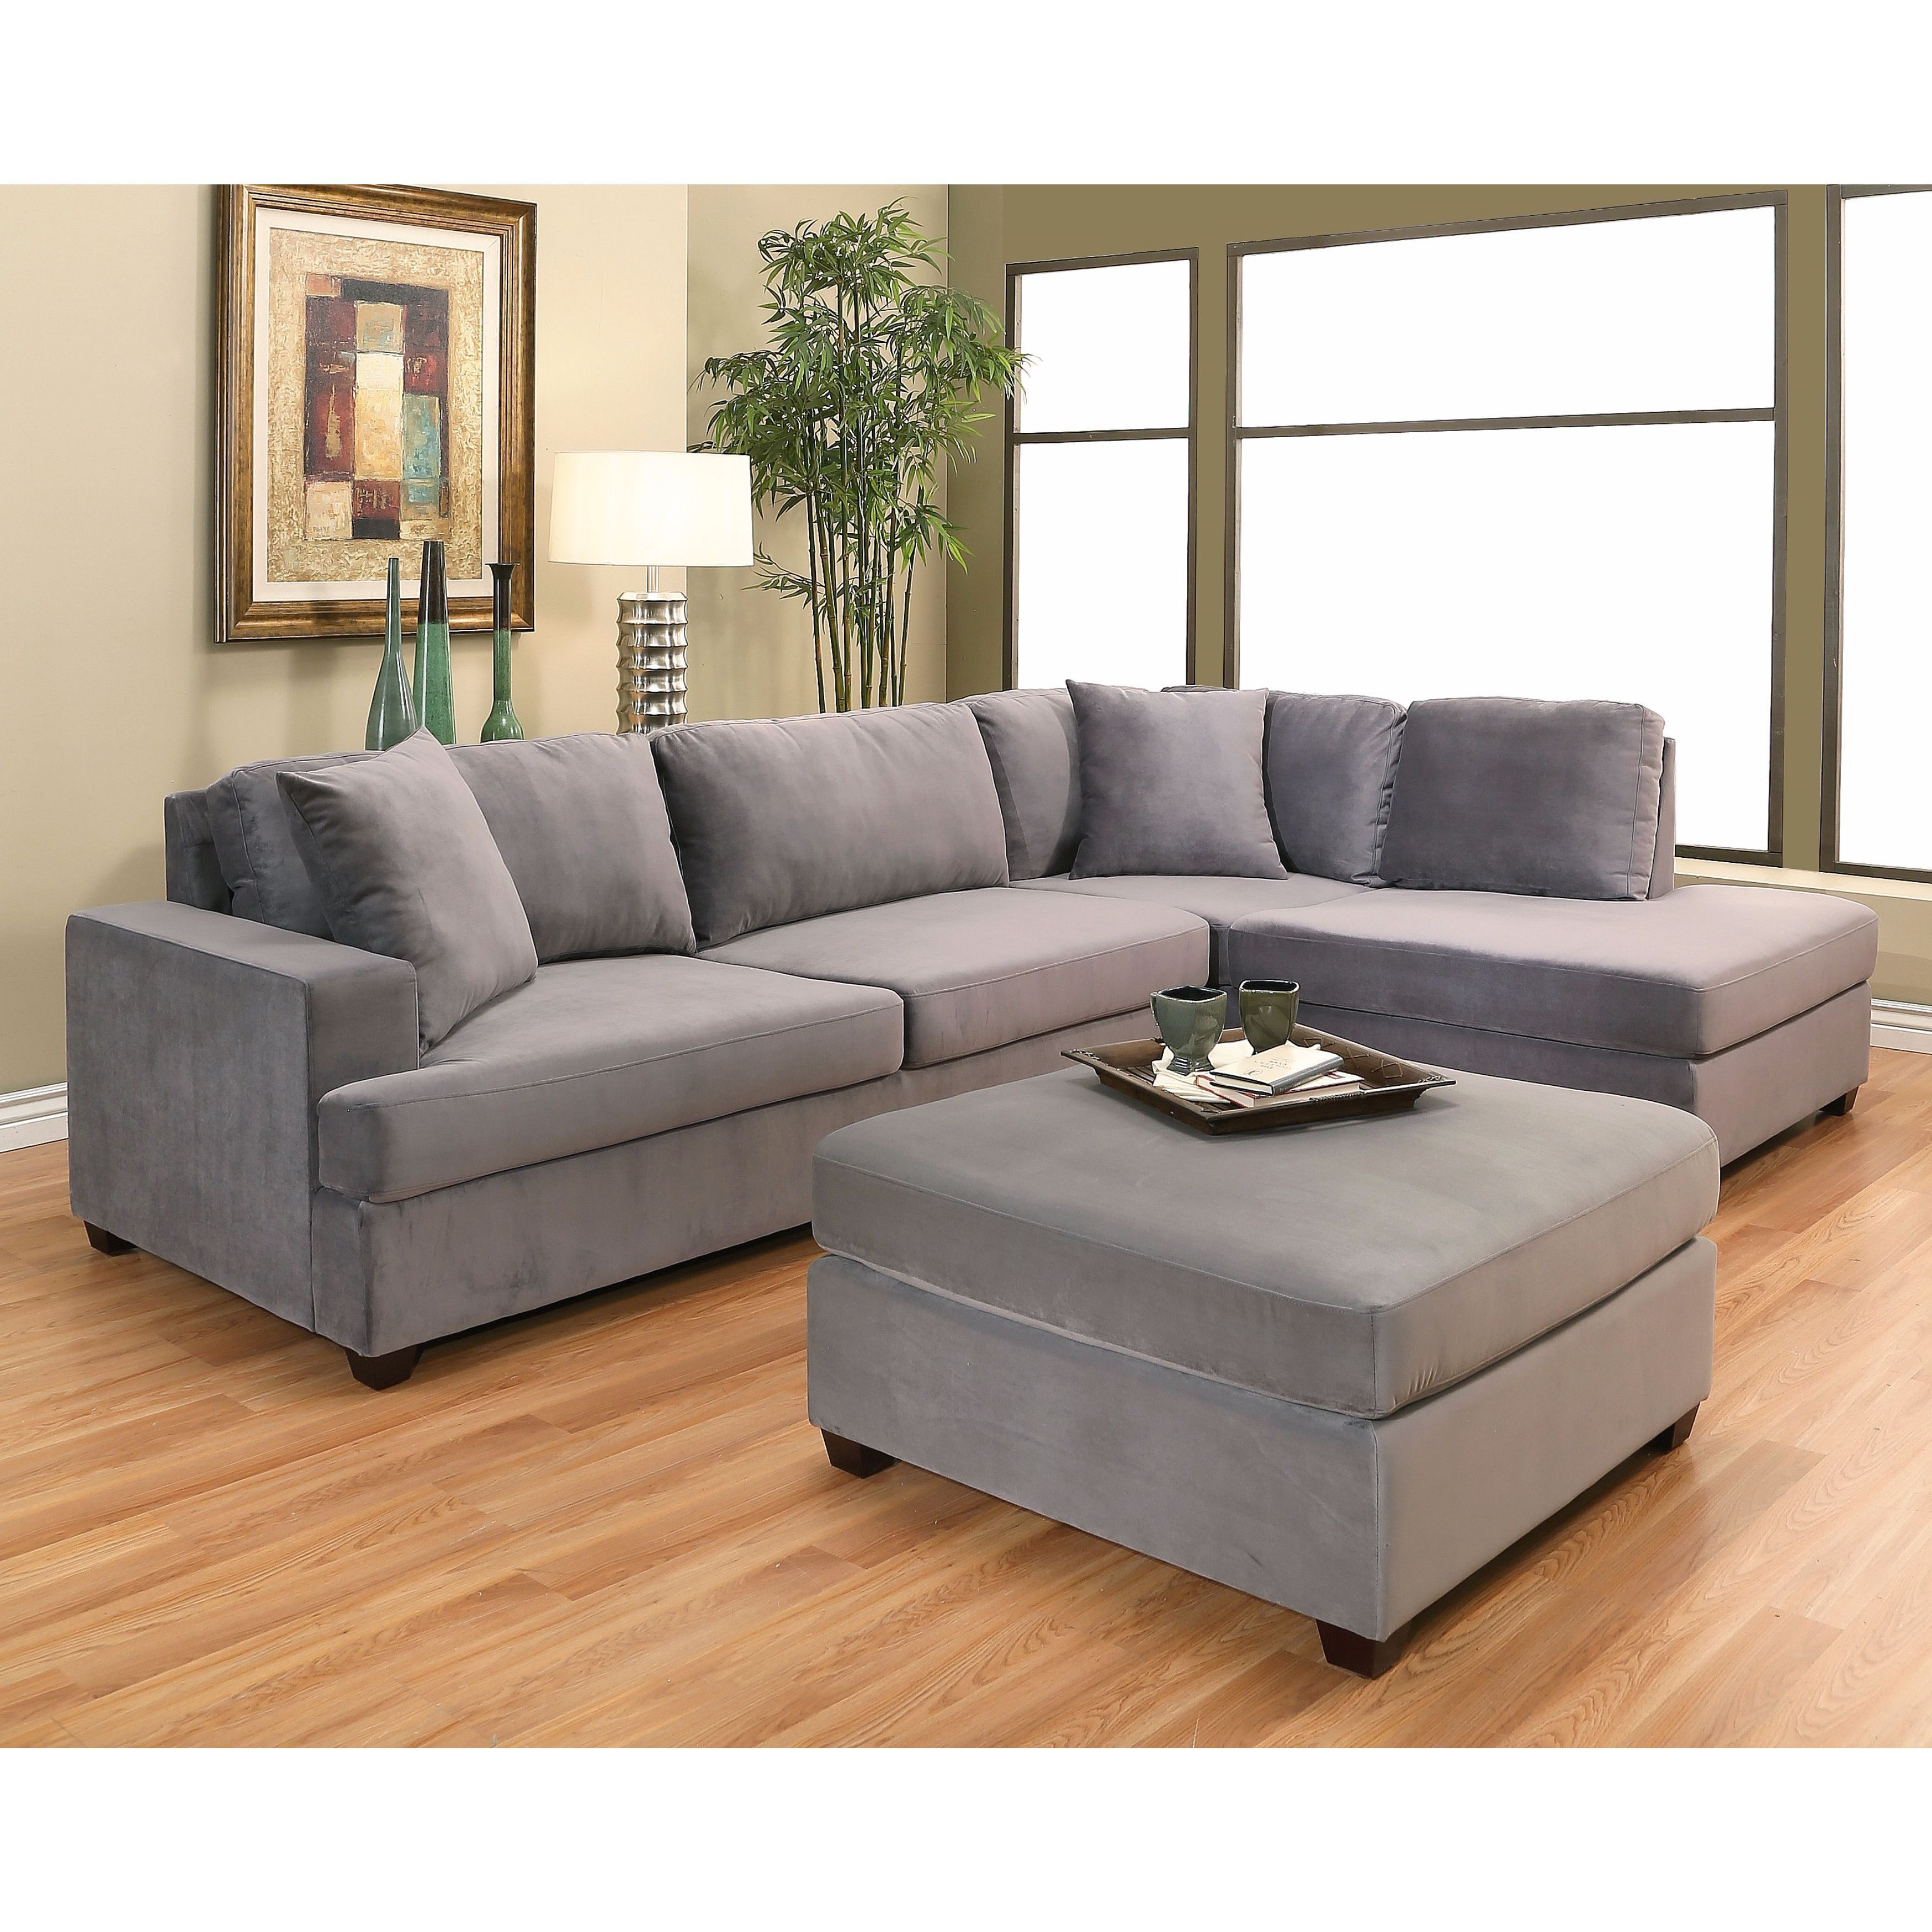 w sectional wbed room living bed furniture chiara livings leather catalog sectionals